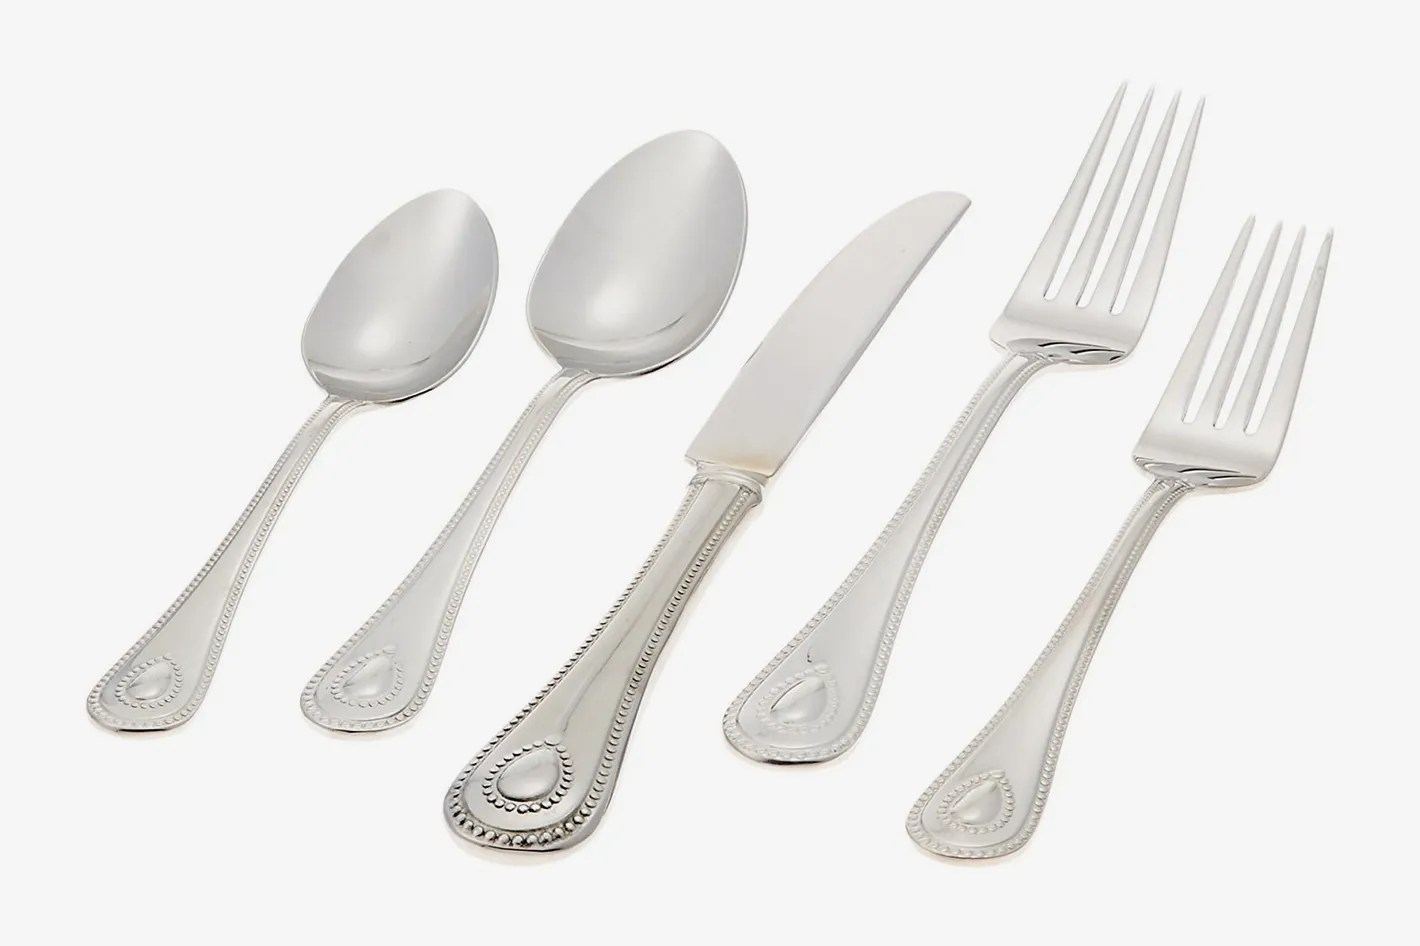 Used Flatware For Sale Lenox 65 Piece French Perle Flatware Set